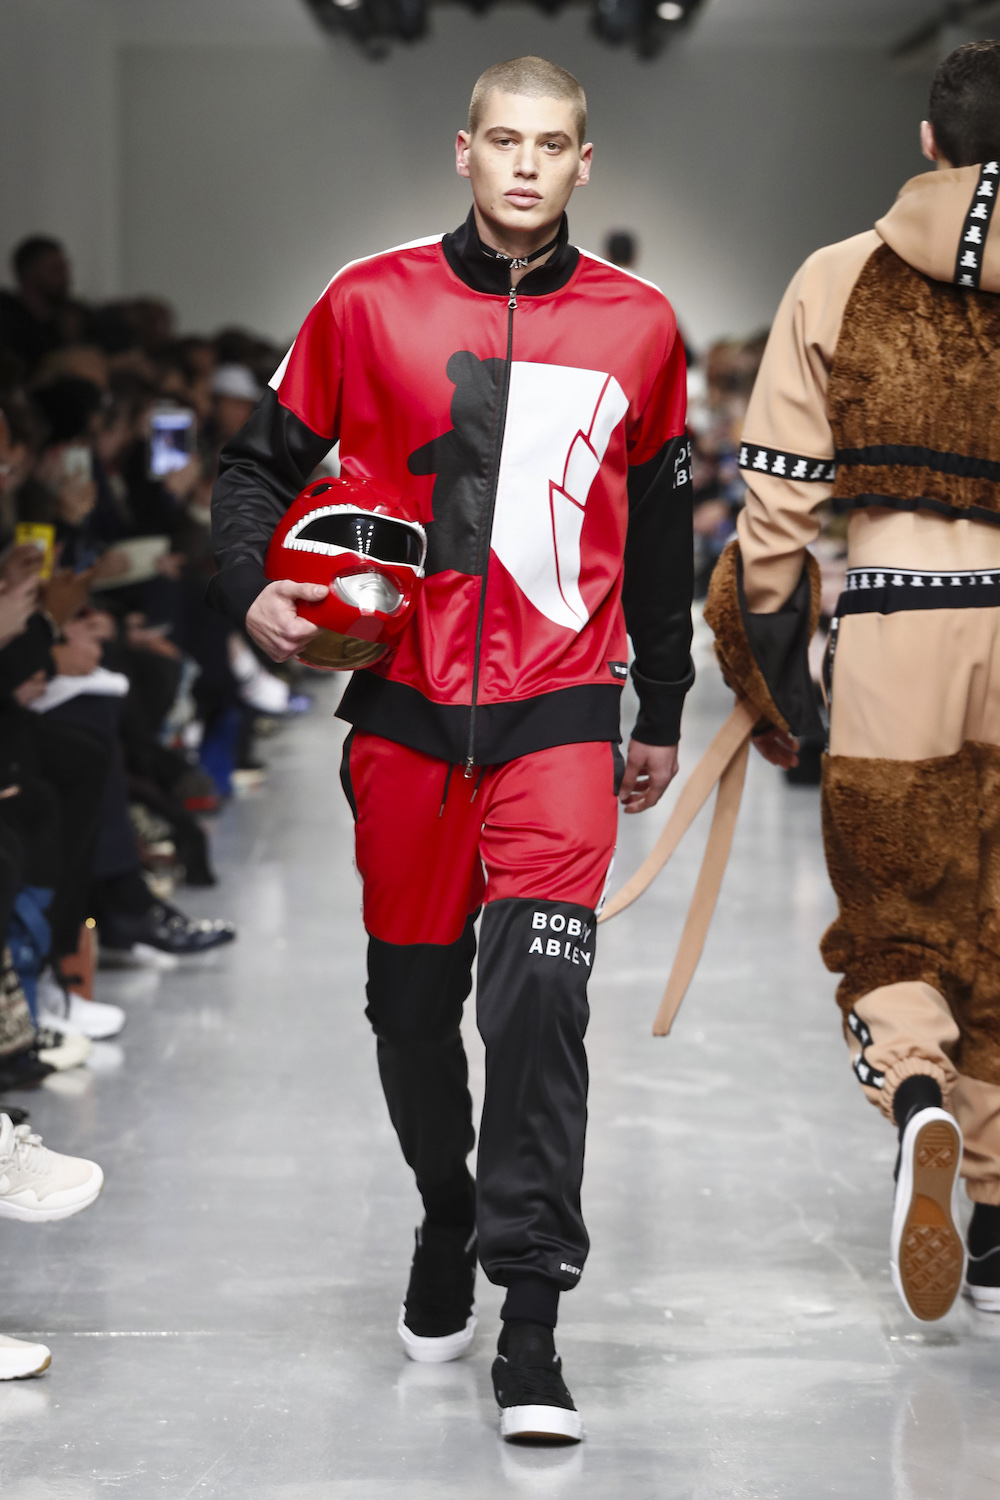 Bobby Abley Mighty Morphin Power Rangers - 1839455